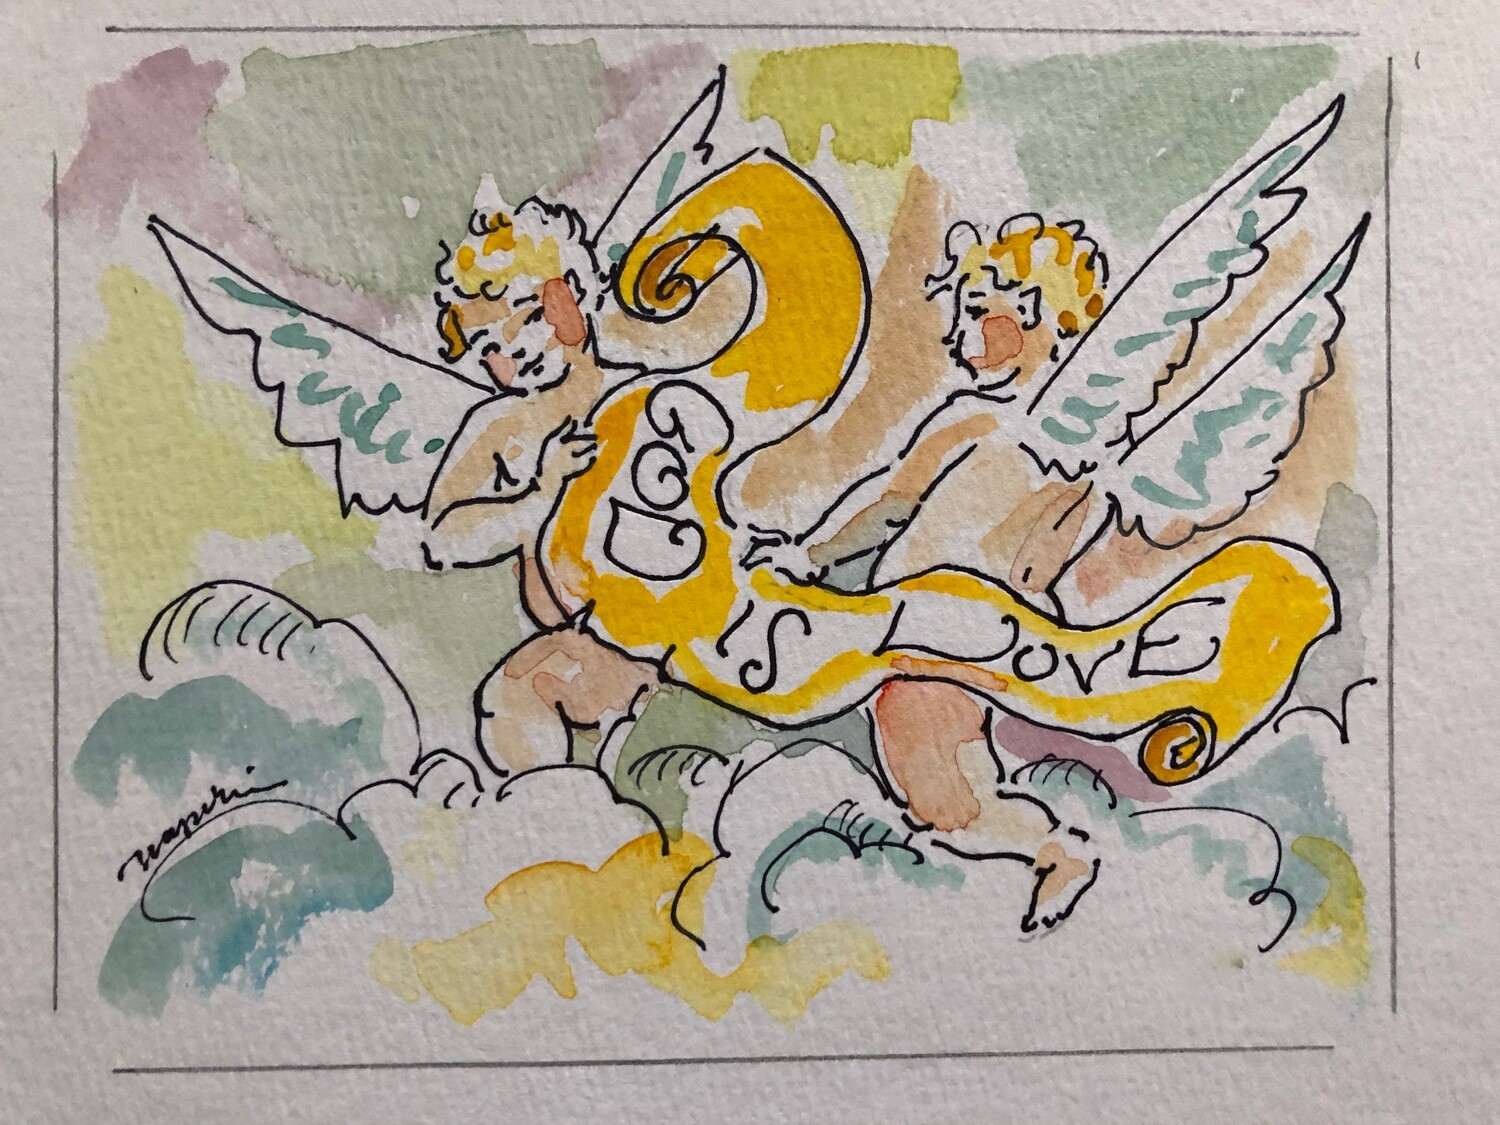 Tim Trapolin God is Love Cherub Notecards (Pack of 10)